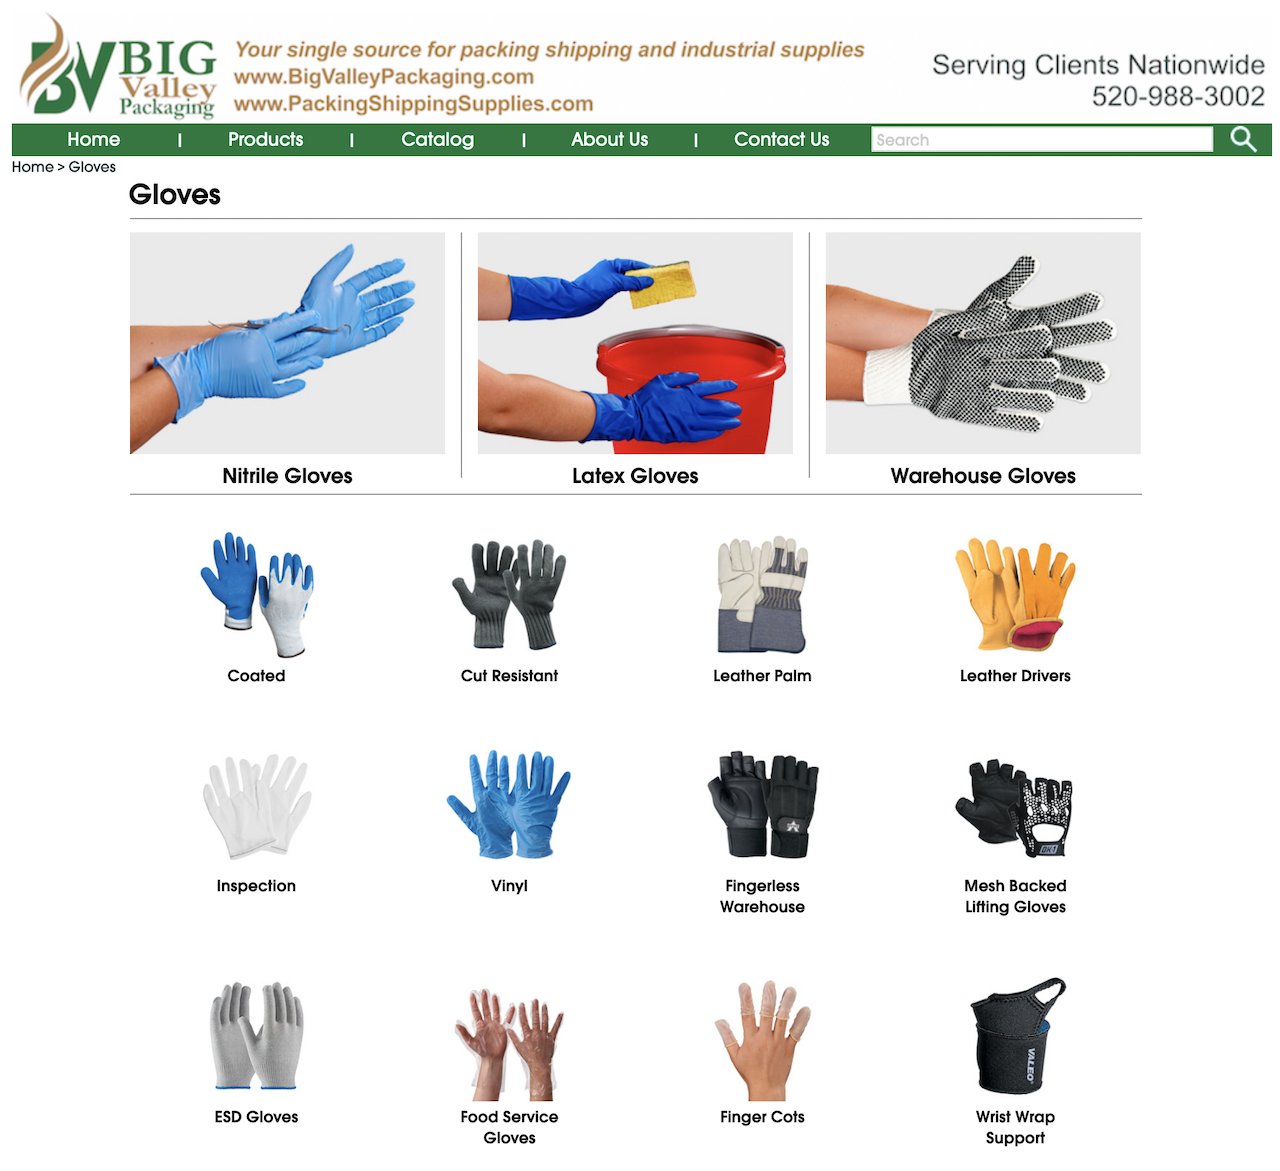 Shop Work Gloves - Work gloves for warehouse shop leather drivers dotted leather palm cut resistant coated and disposable inspection glove.Leather work glovesDriver gloveWarehouse gloves rubber dots palmsDisposable latex nitrile vinyl food service glovesCotton and nylon inspection glovesMechanics gloves